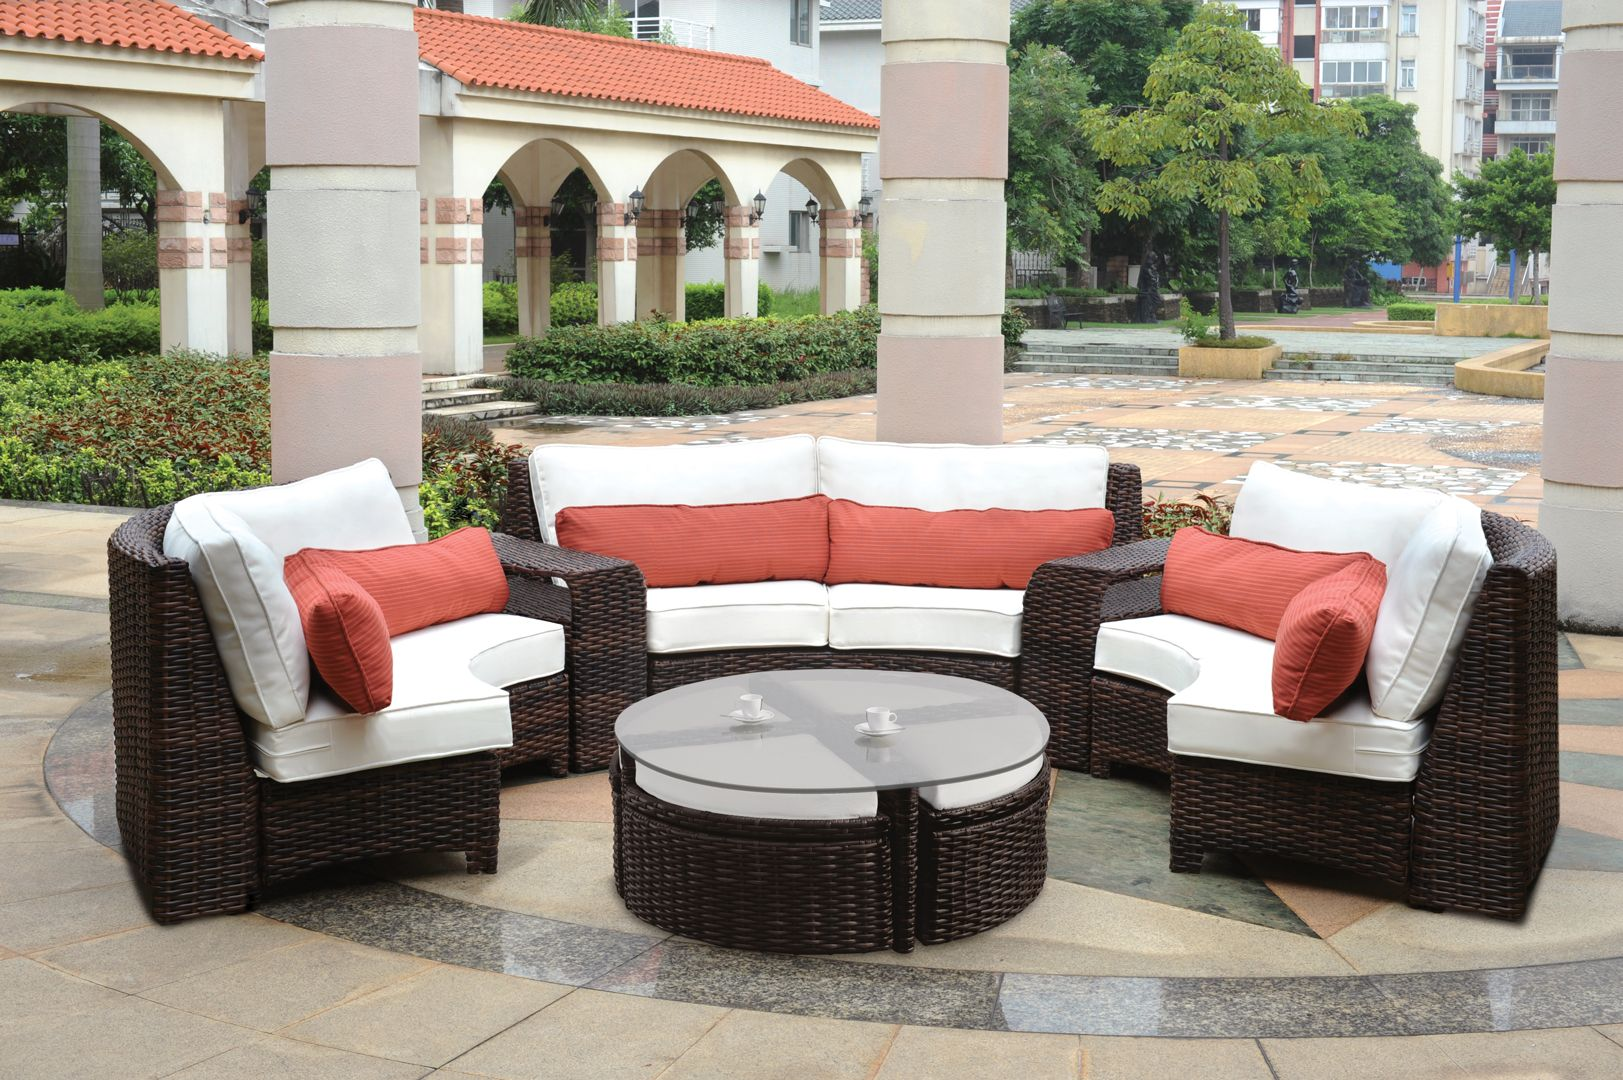 Saint Tropez Sectional Patio Furniture Collection From South Sea Rattan